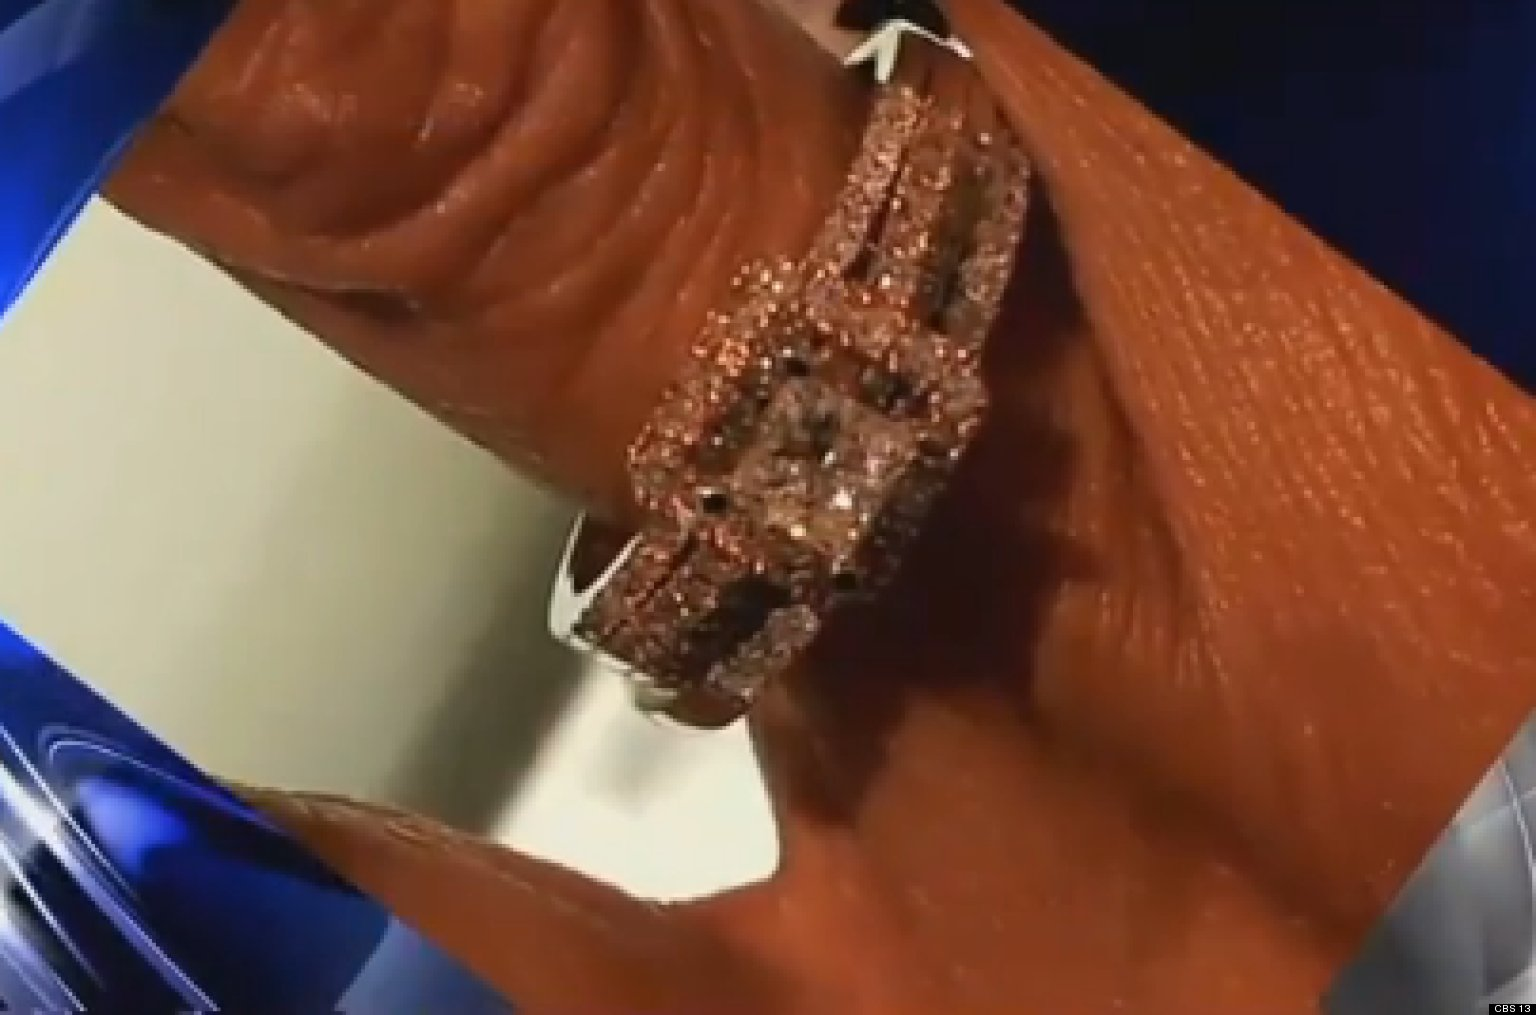 jc penney ring engagement n jcpenney jewelry wedding rings J C Penney Refused To Refund Defective Engagement Ring Until Media Intervened Report HuffPost